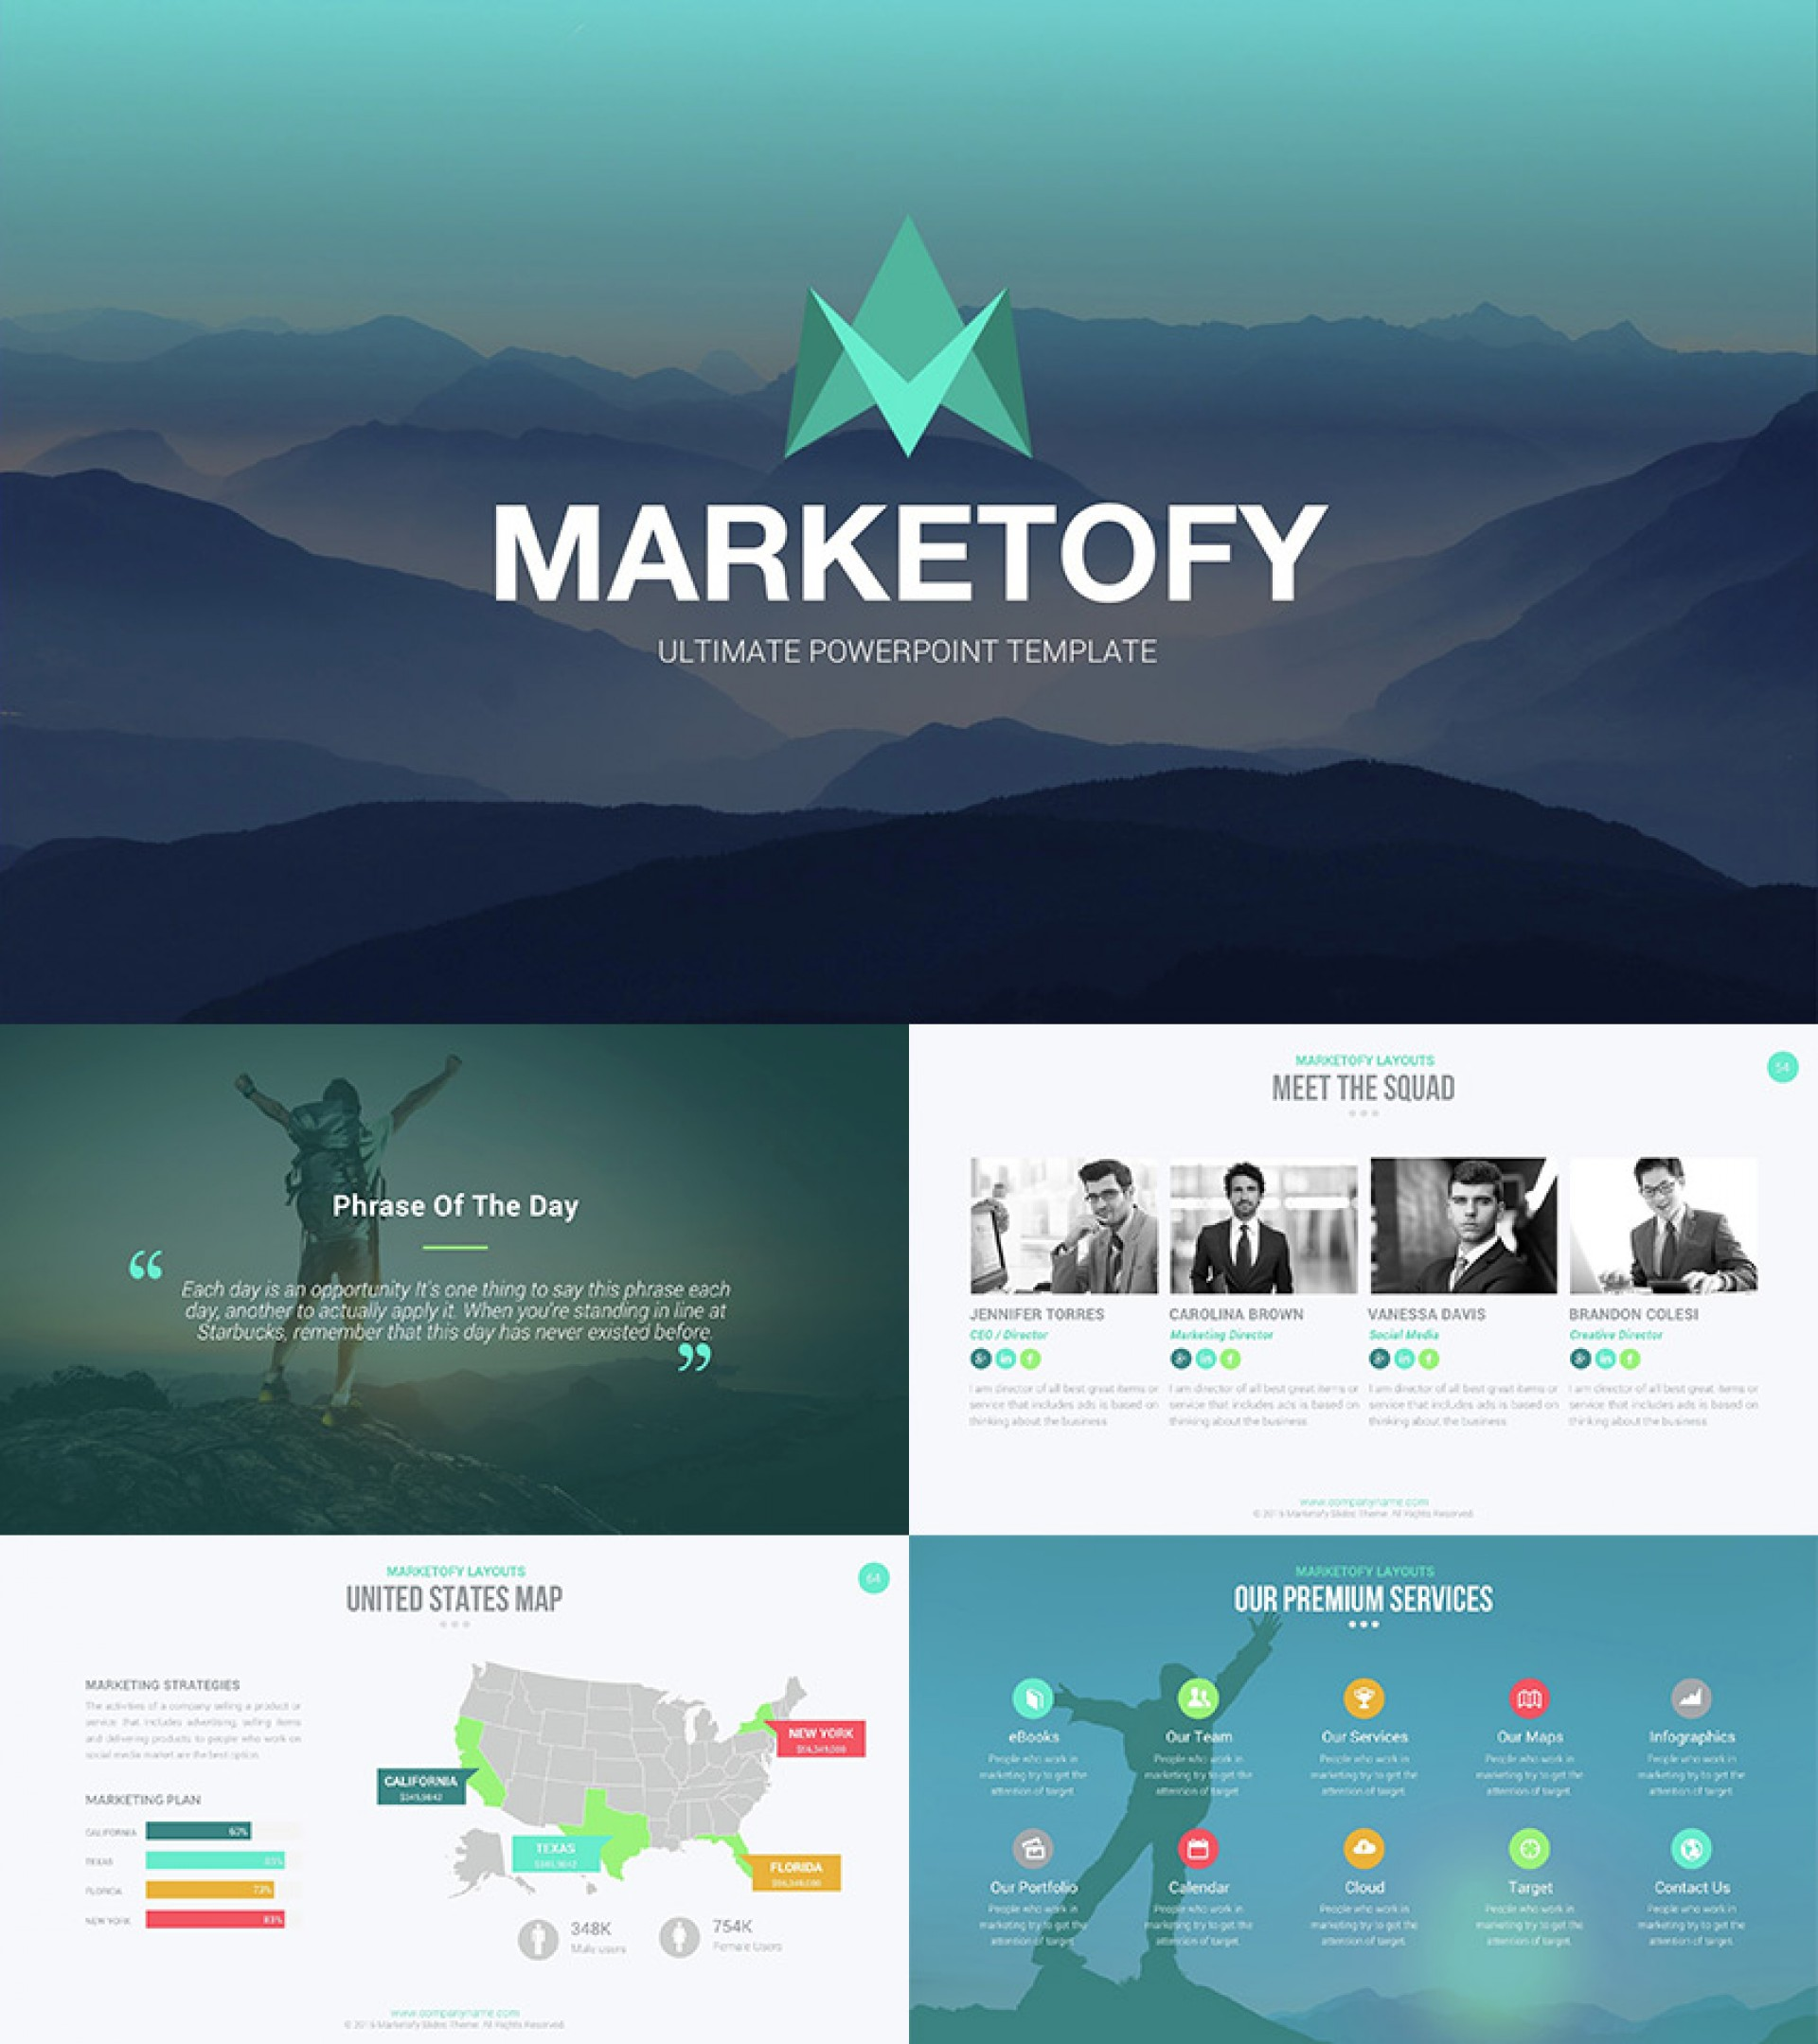 024 Marketofy Powerpoint Presentation Template Research Paper Pay Excellent For Equal Work In India Performance Writing 1920